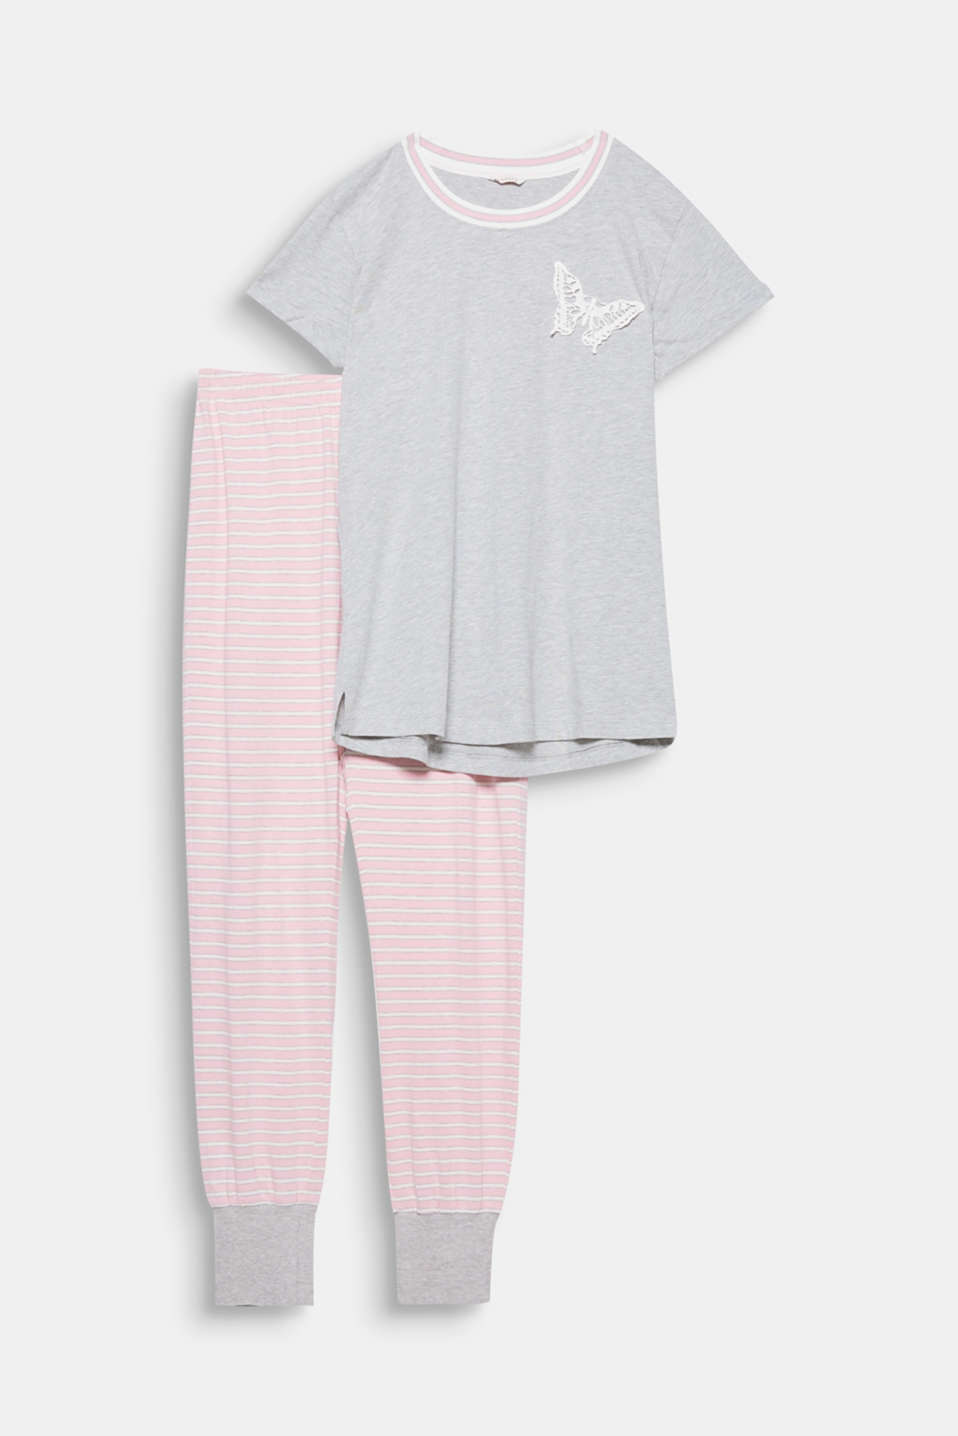 These cute pyjamas featuring striped bottoms and an appliquéd butterfly guarantee top comfort.